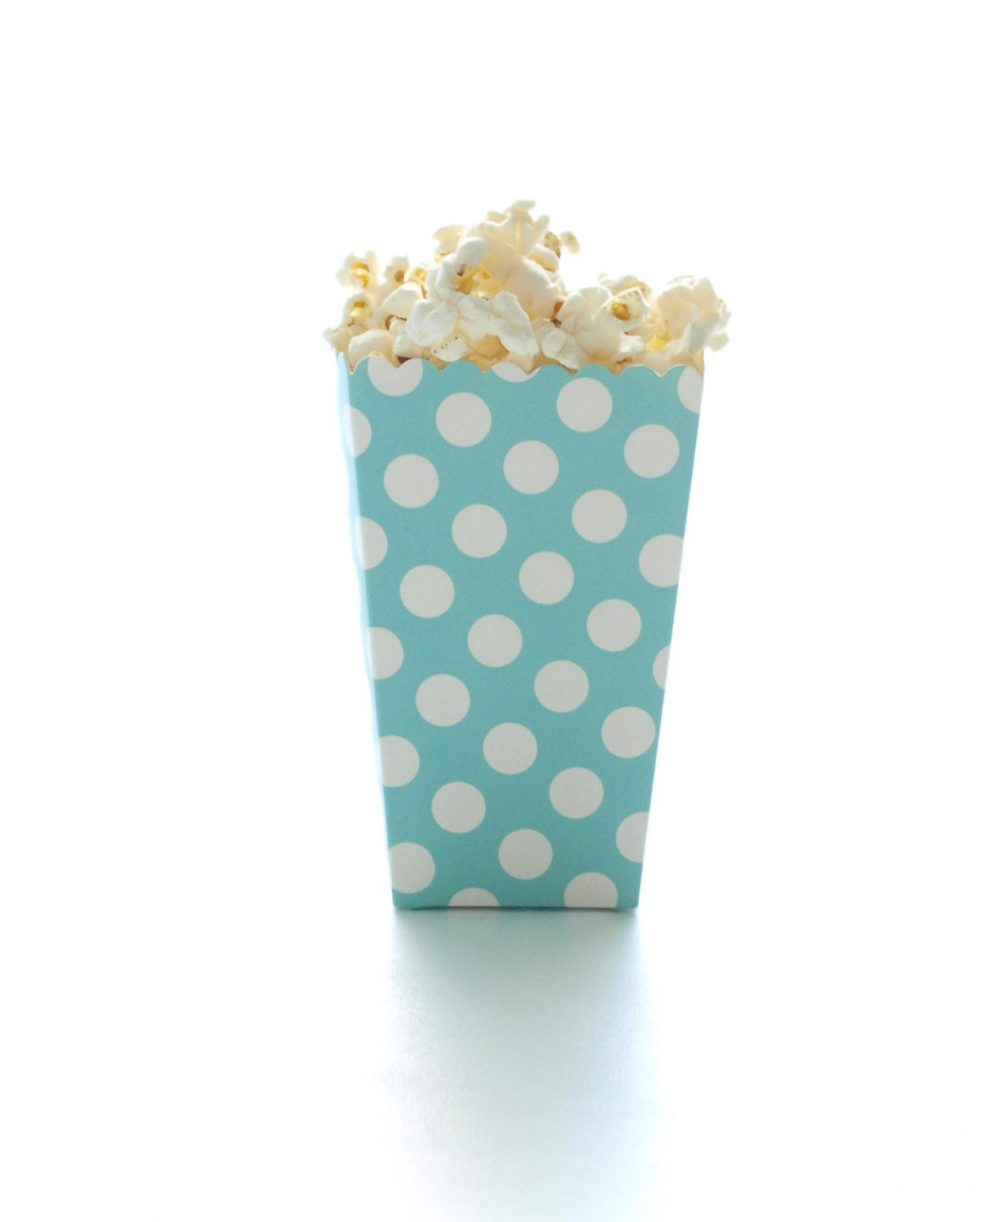 Aqua Blue Polka Dot Popcorn Boxes | 12 Pack - Dessert Table Candy Boxes, Scallop Edged Treat Containers